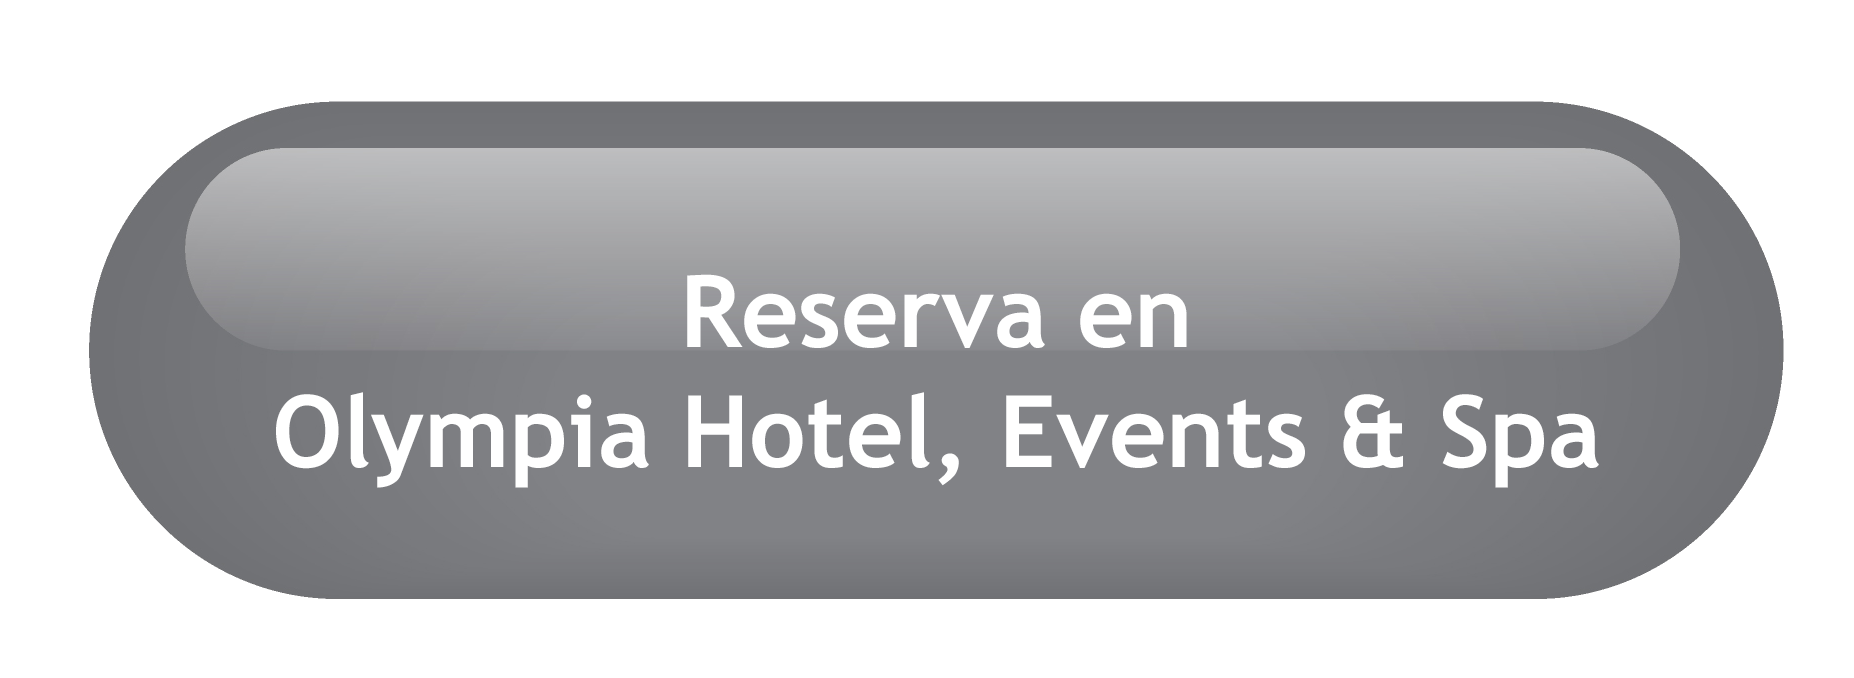 reserva olympia hotel events spa